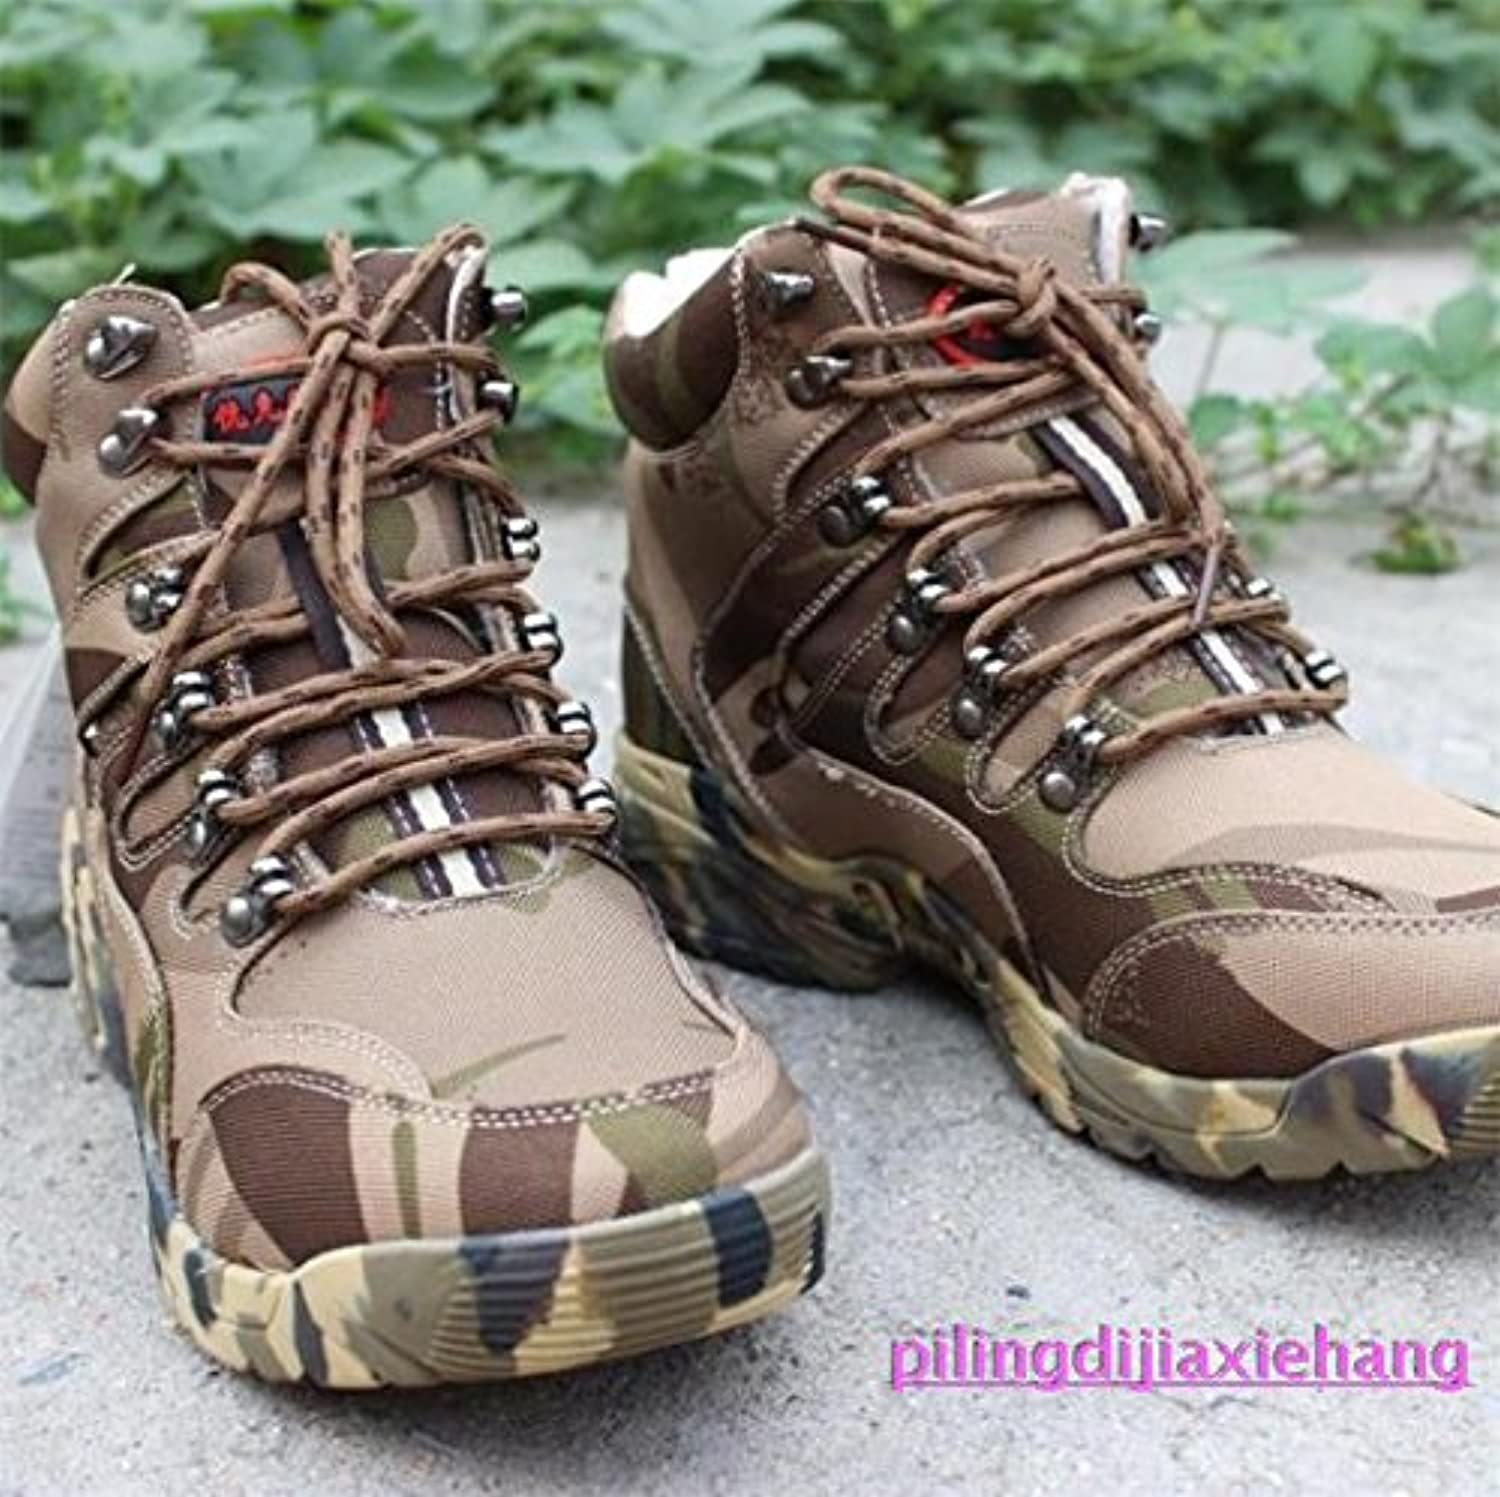 Men's outdoor winter outdoor sports shoes and boots high boots waterproof anti skid